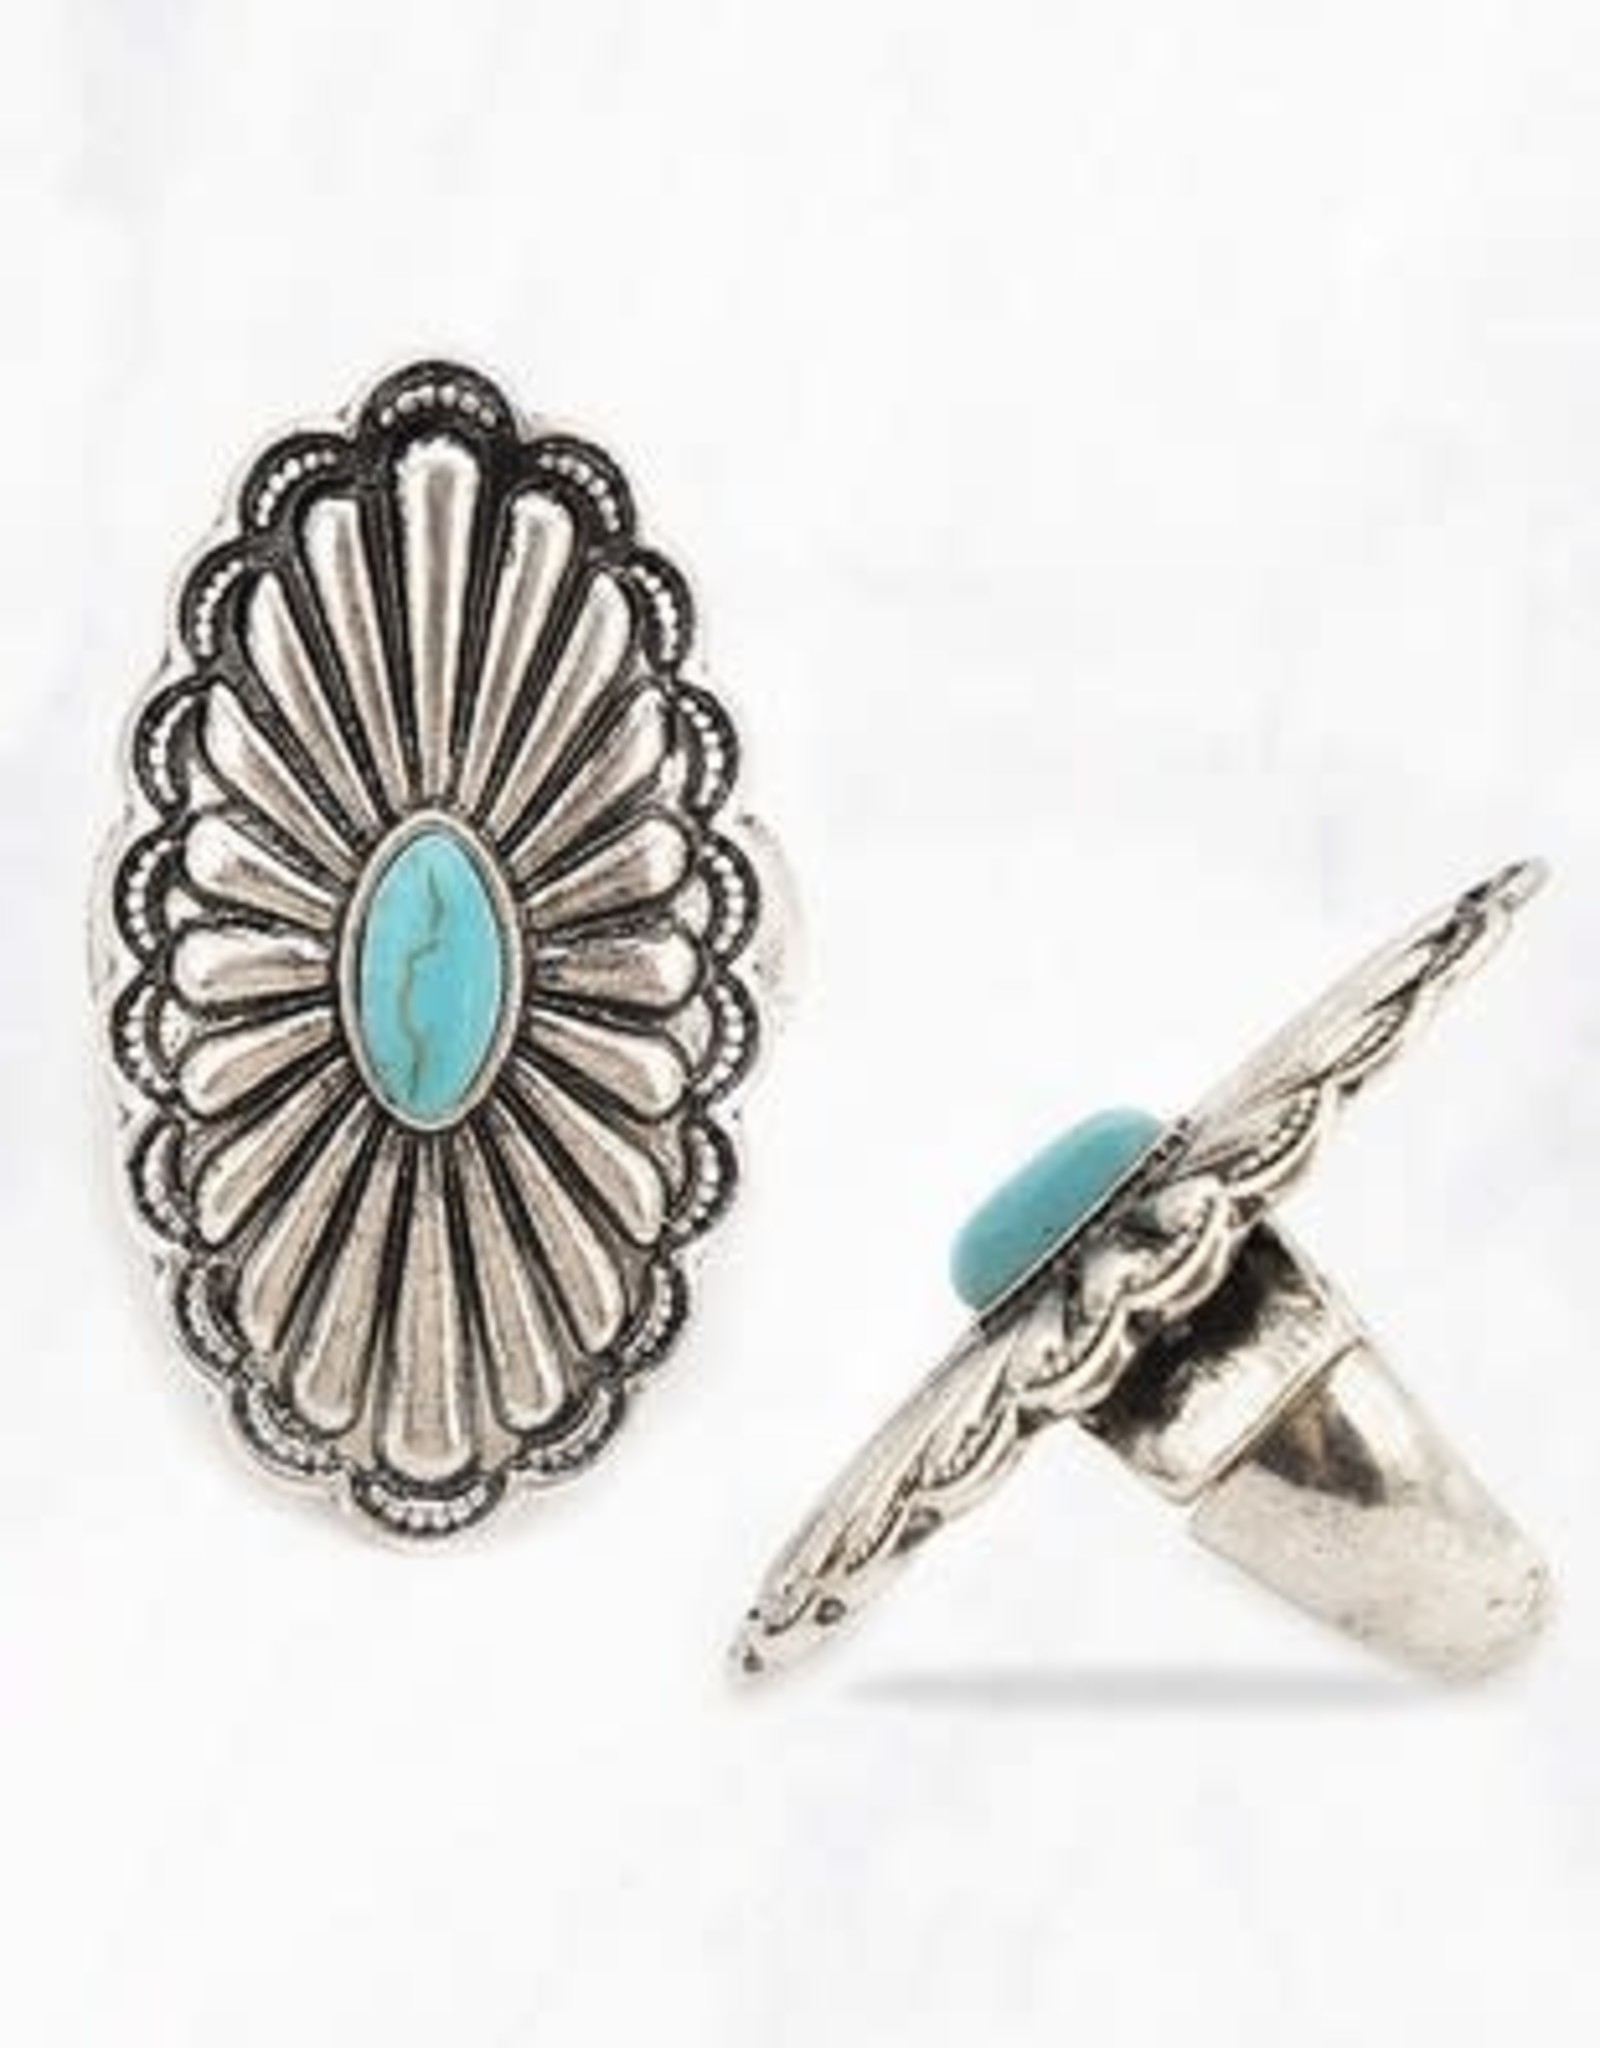 Wink Oval Turquoise Stone Filigree Ring